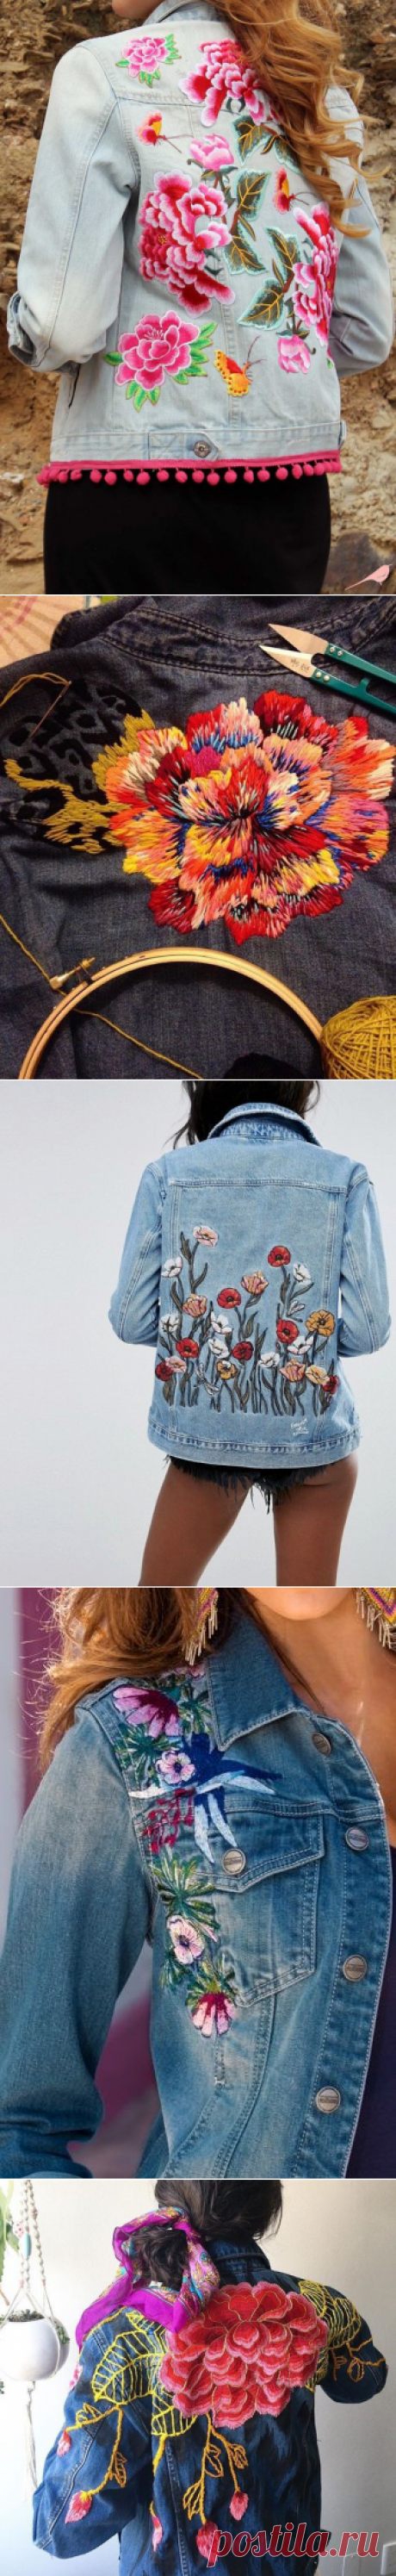 The embroidered jeans jackets \/ the Embroidery \/ Second Street